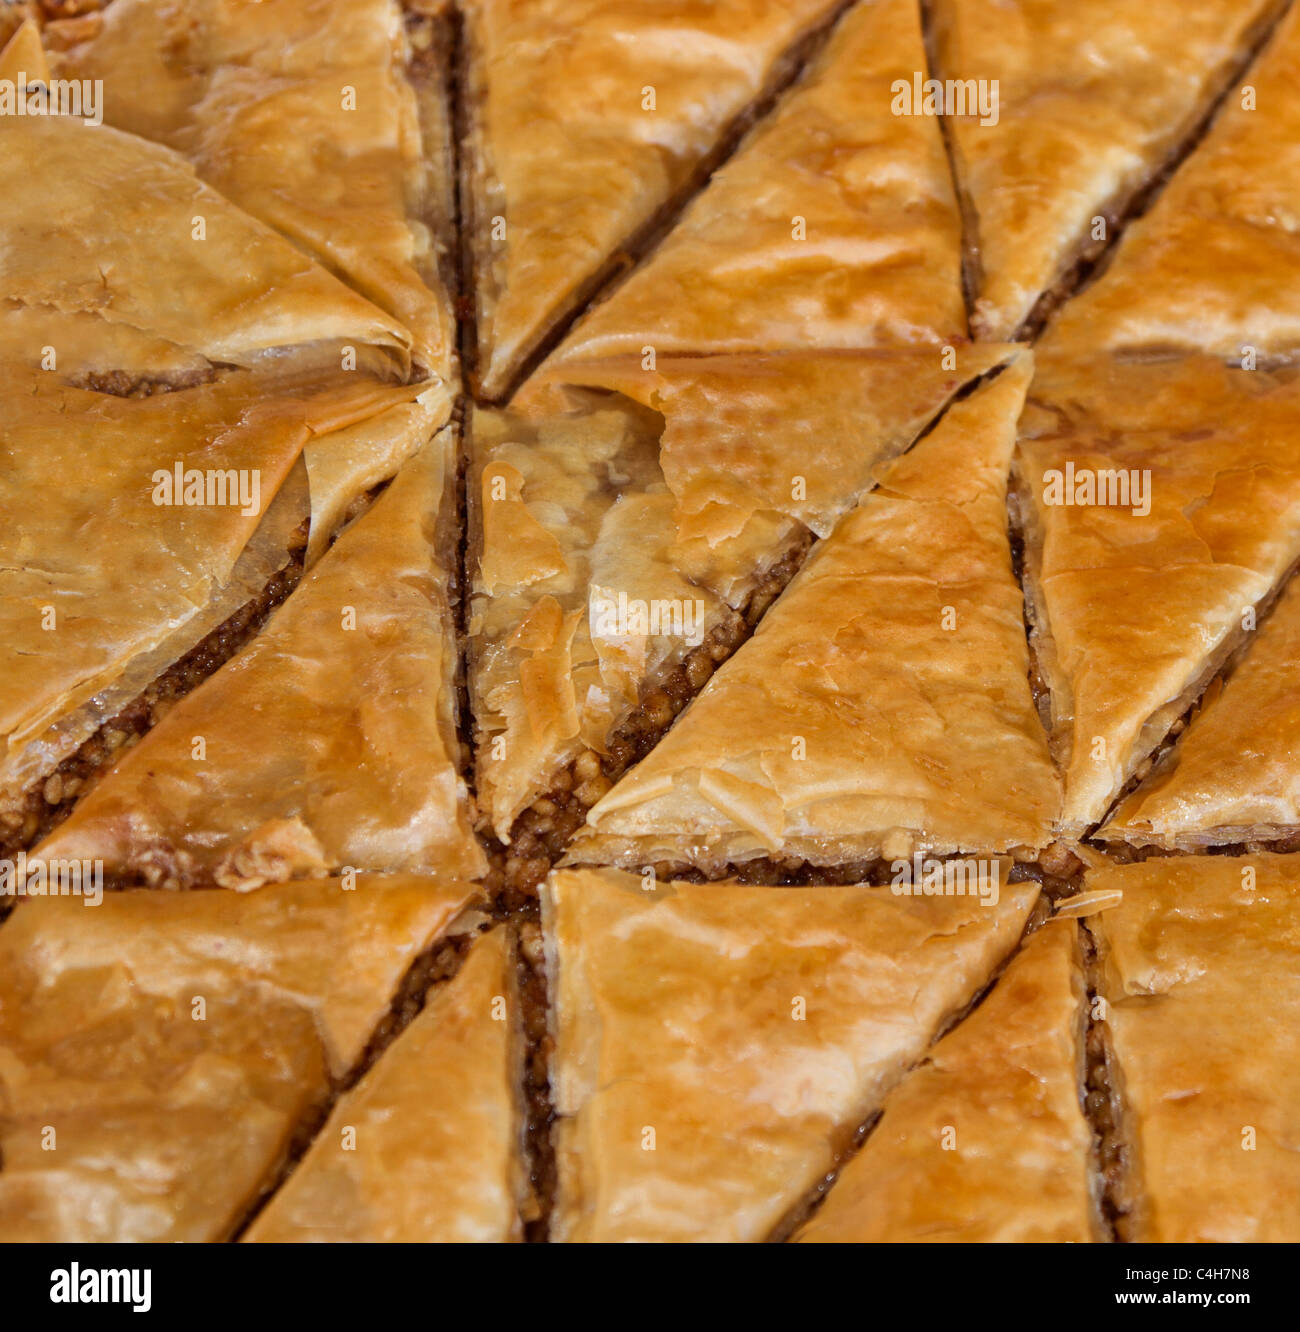 Triangular shapes of Baklava, a pastry made of ingredients including phyllo leaves, nuts, and honey. Stock Photo